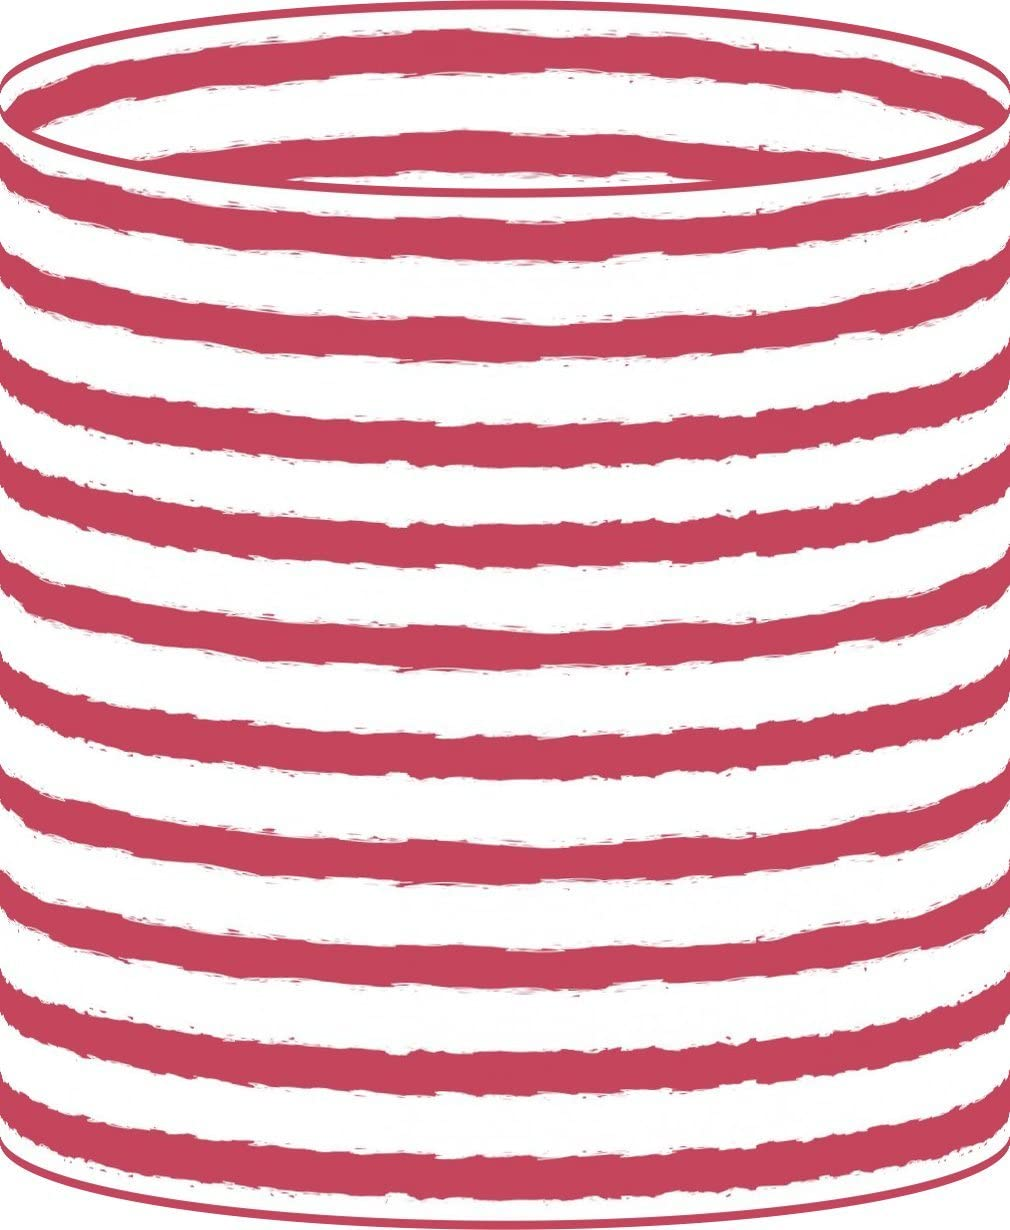 LampPix 10 Inch Table Lamp Shade – Nautical Stripe Red Canvas Desk Lampshade Spider Fitting